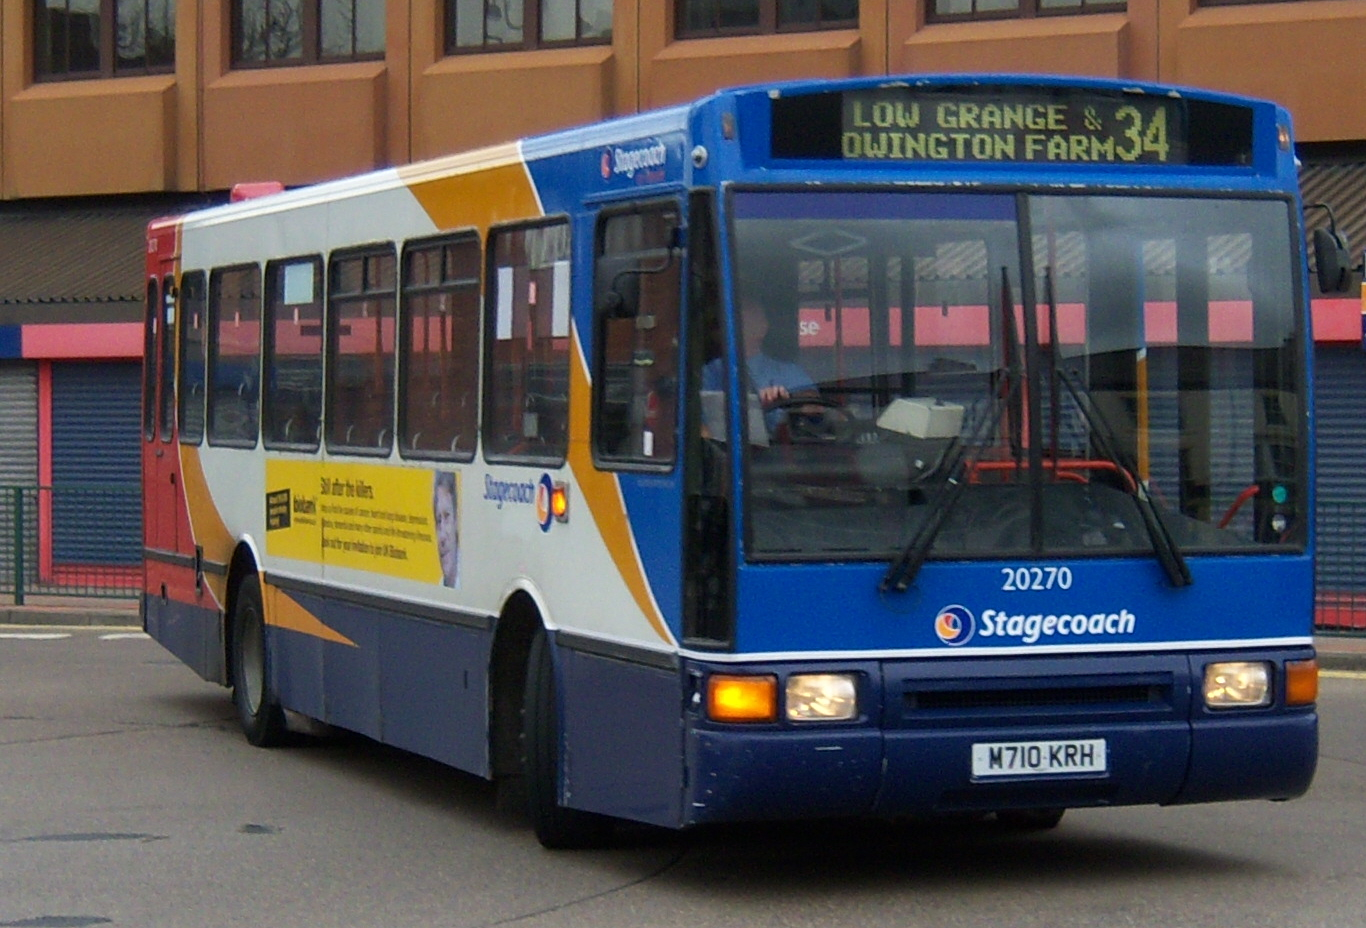 File Stagecoach On Teeside Bus 20270 Volvo B10m Northern